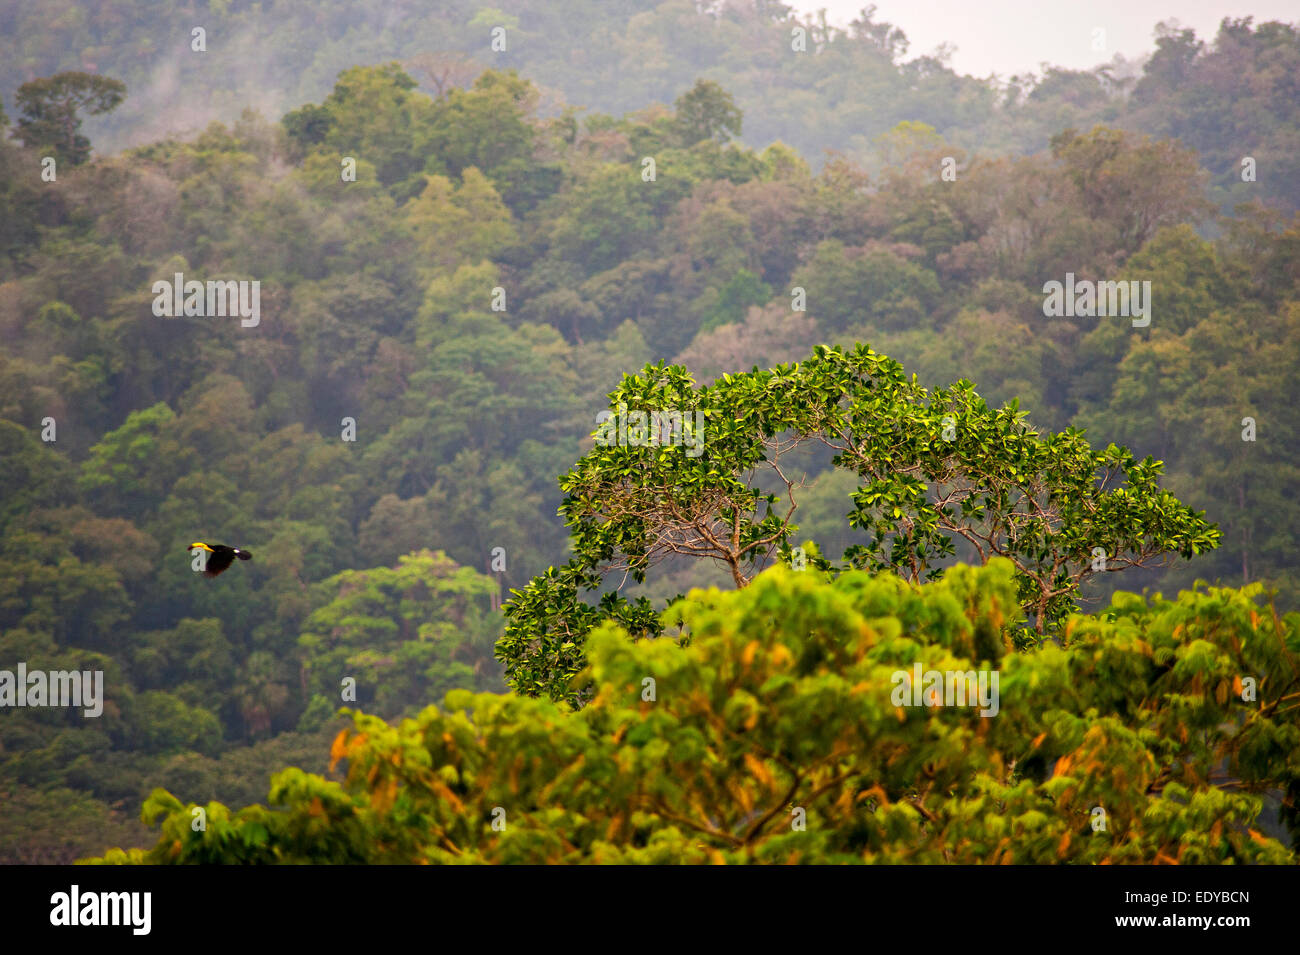 Rainforest of Belize at Belcampo Belize - Stock Image